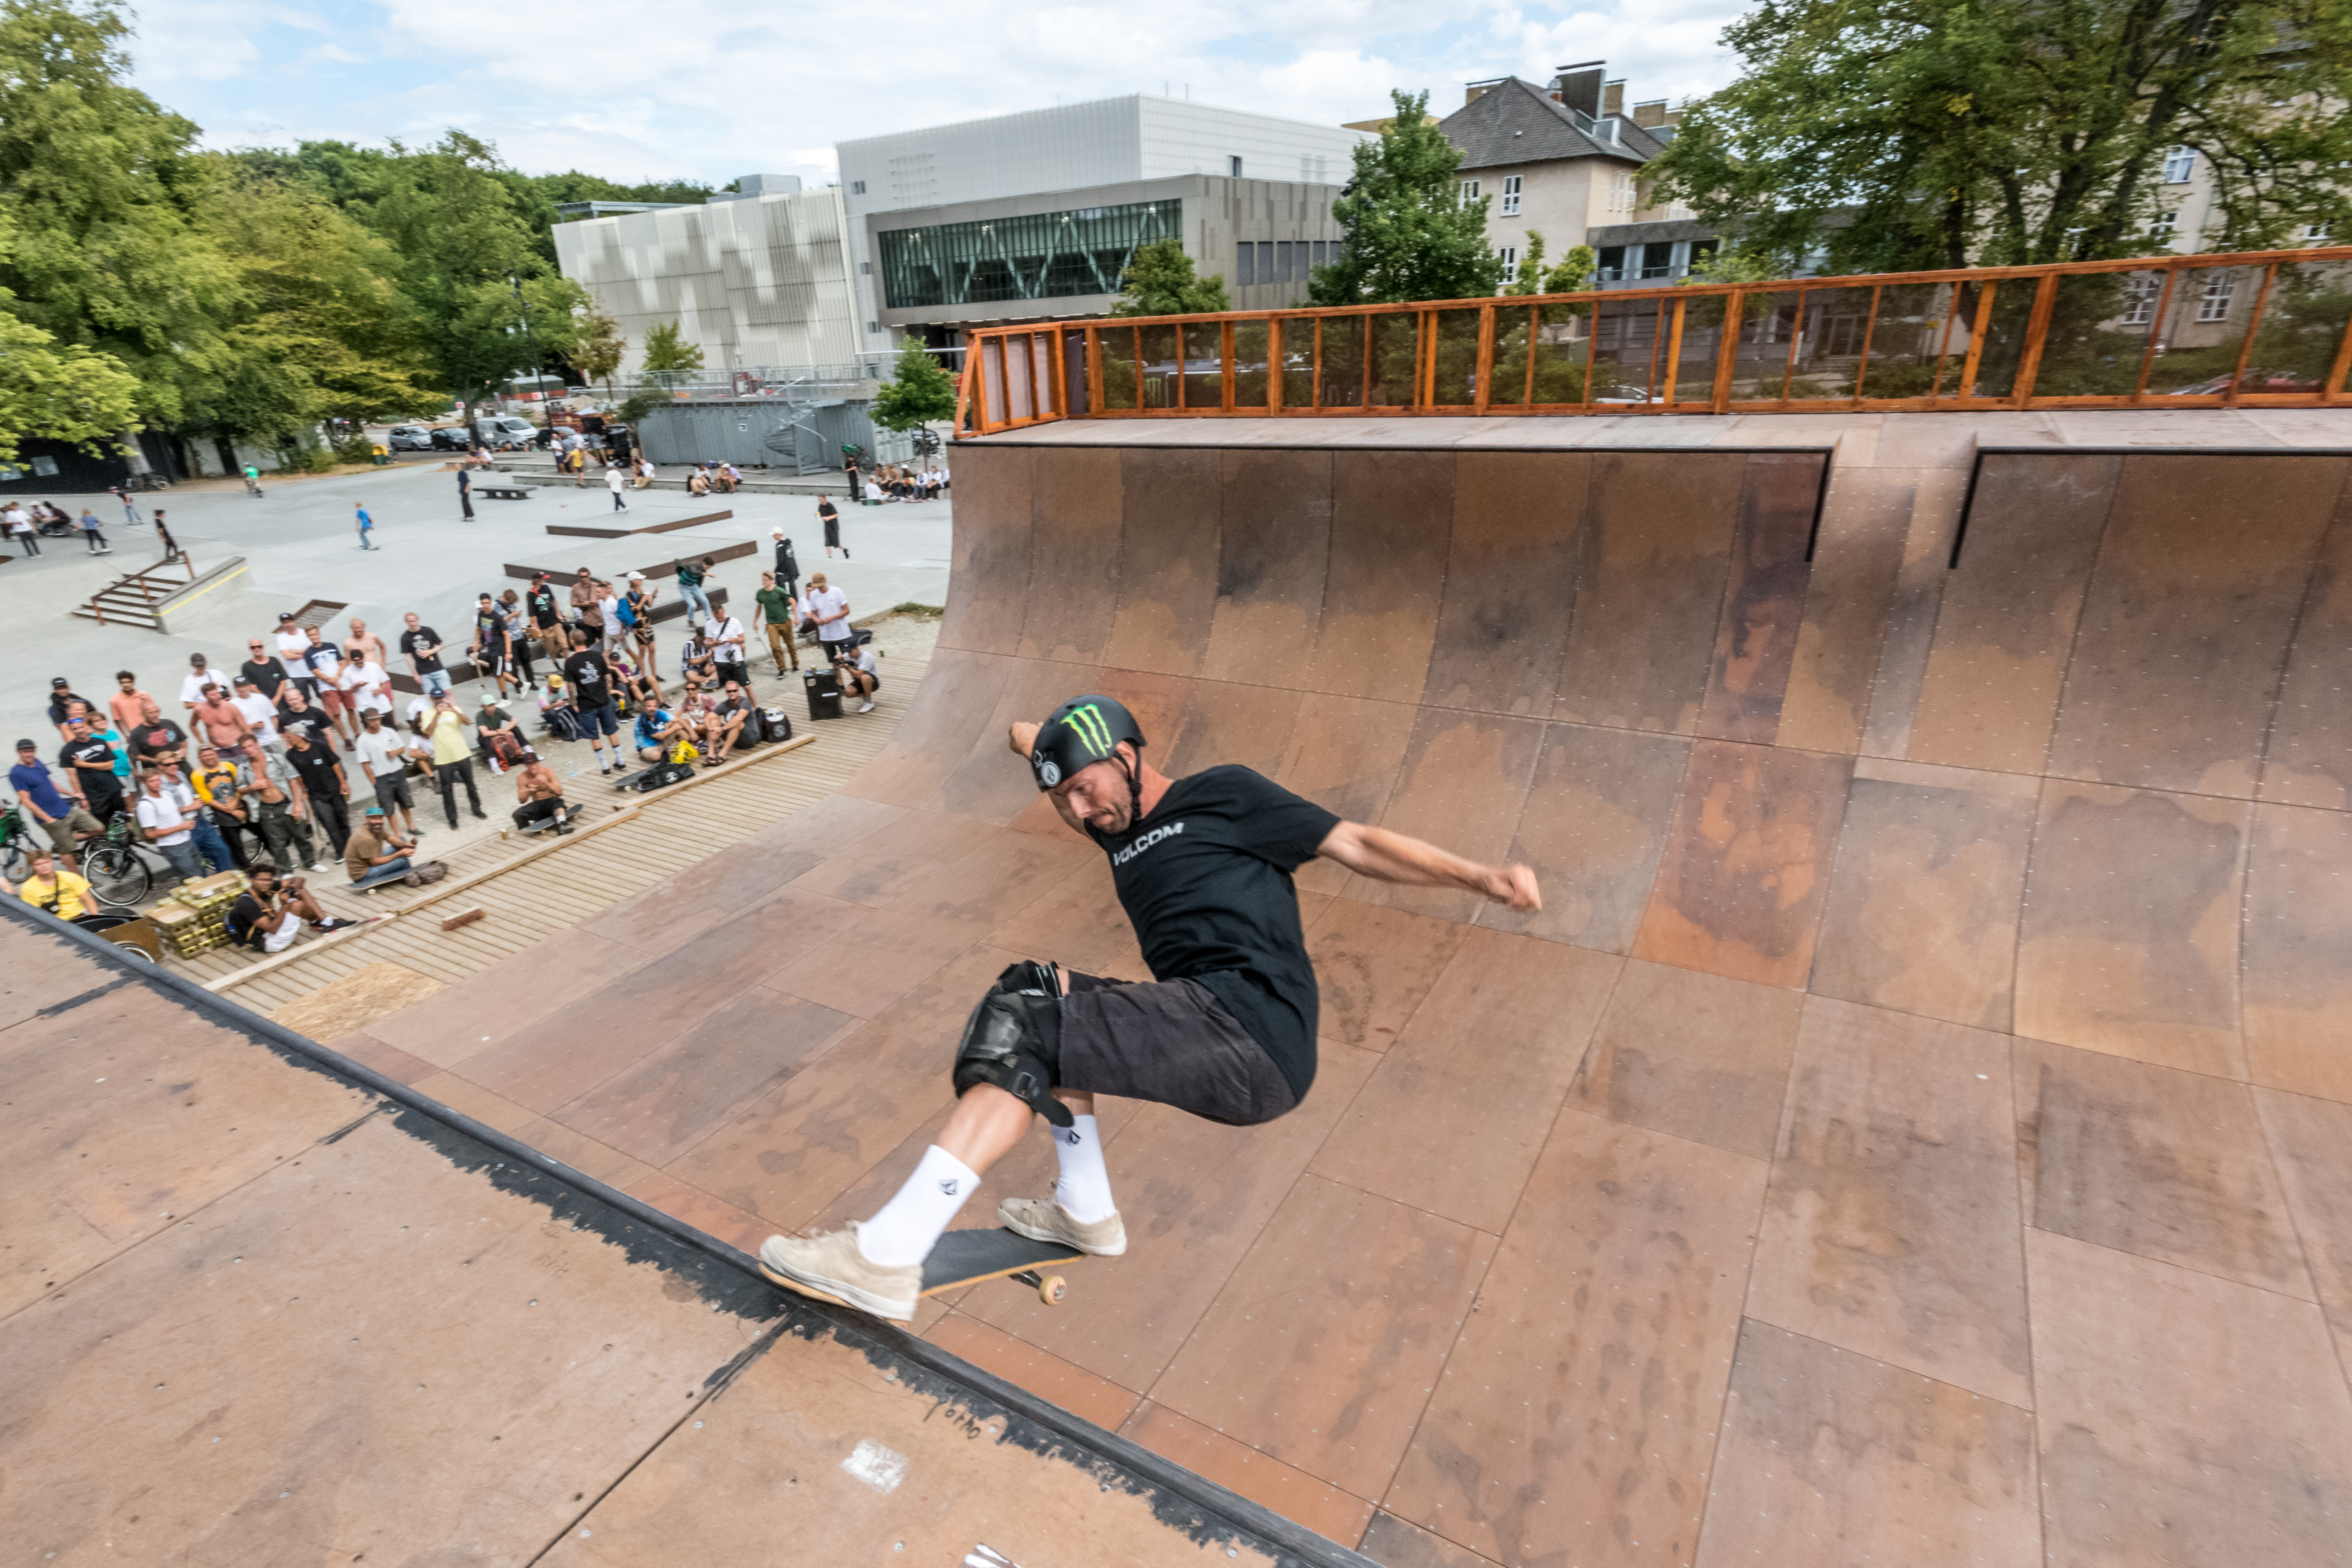 CPH PRO 2018 Vert and Hullet Session - 11 - Rune Glifberg